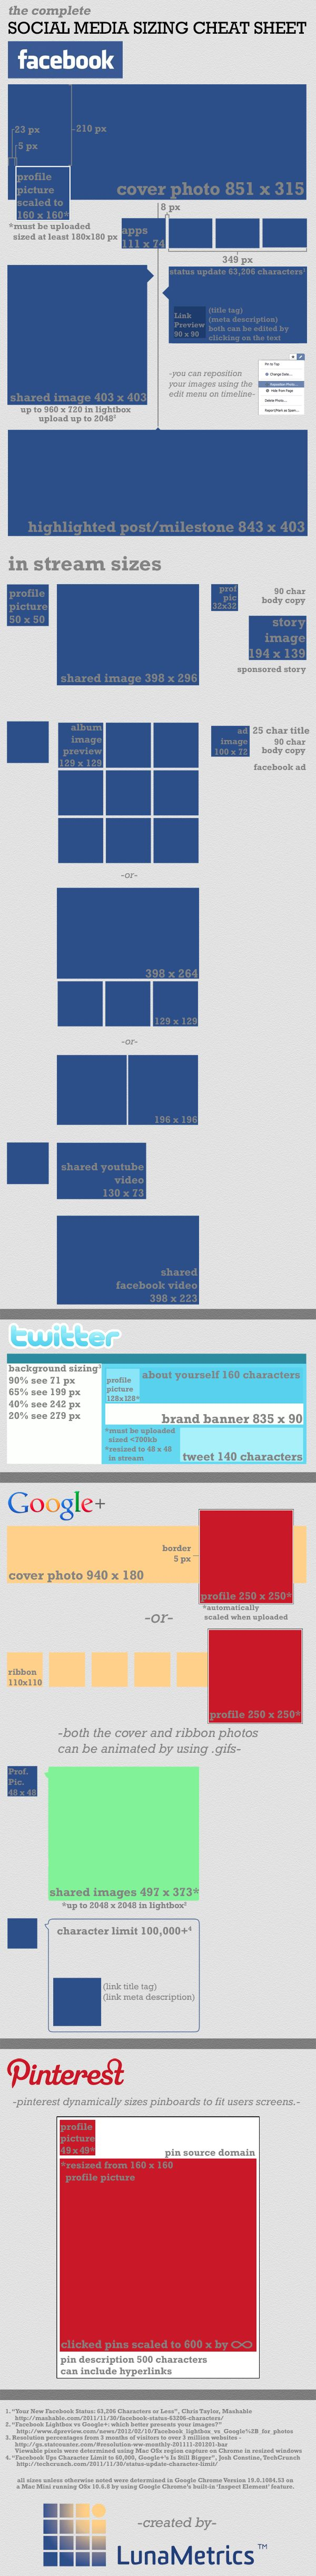 Useful for Setting Up Social Media Pages